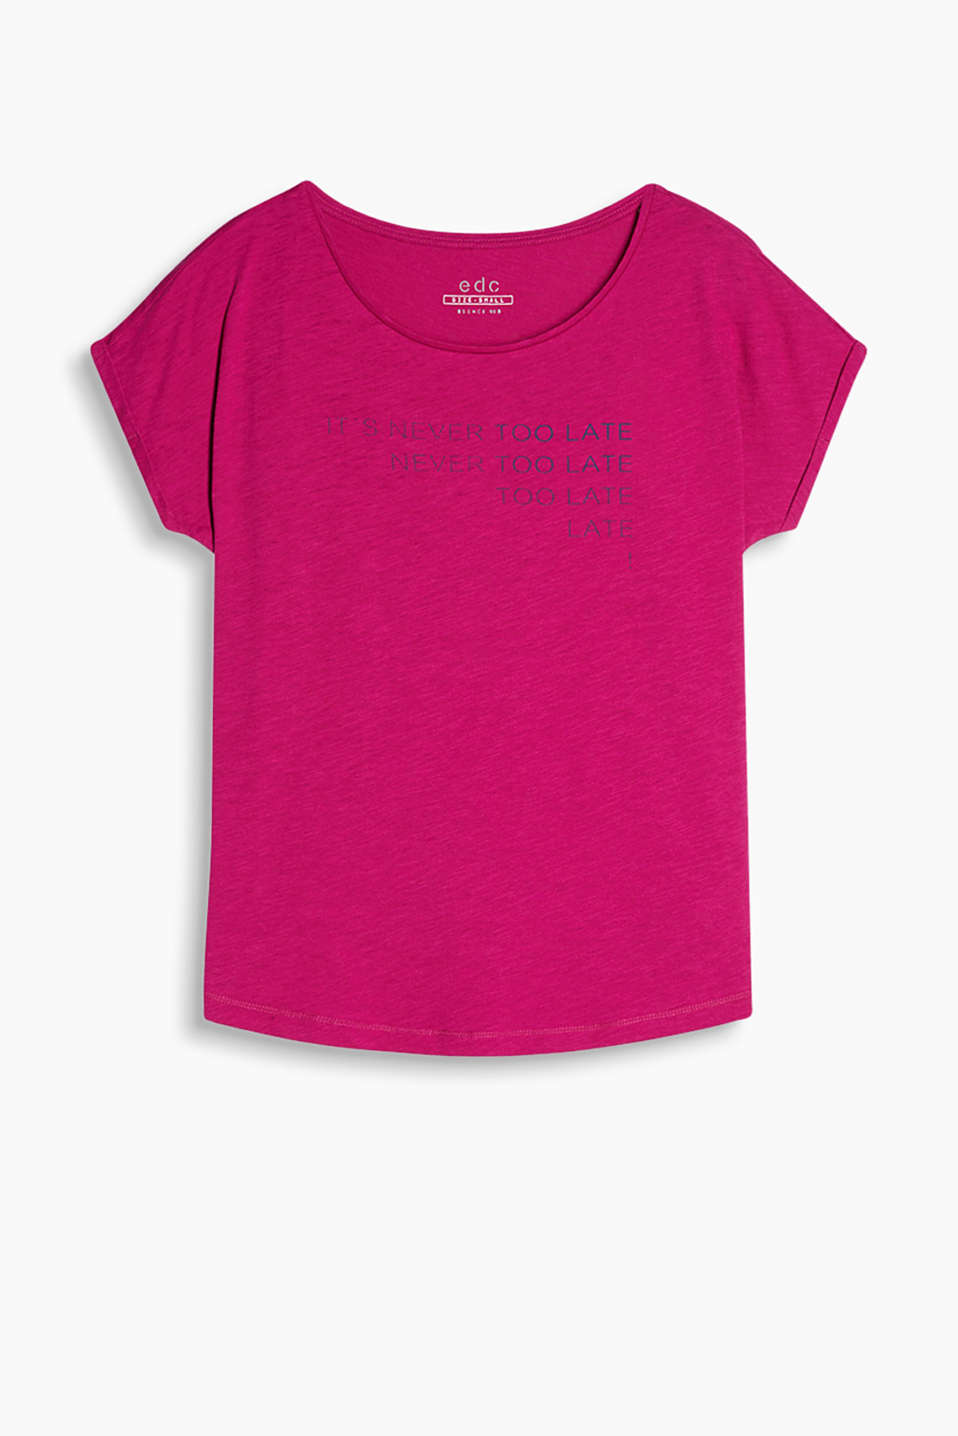 T-shirt with cool, printed lettering, a round neckline, batwing sleeves and a rounded hem